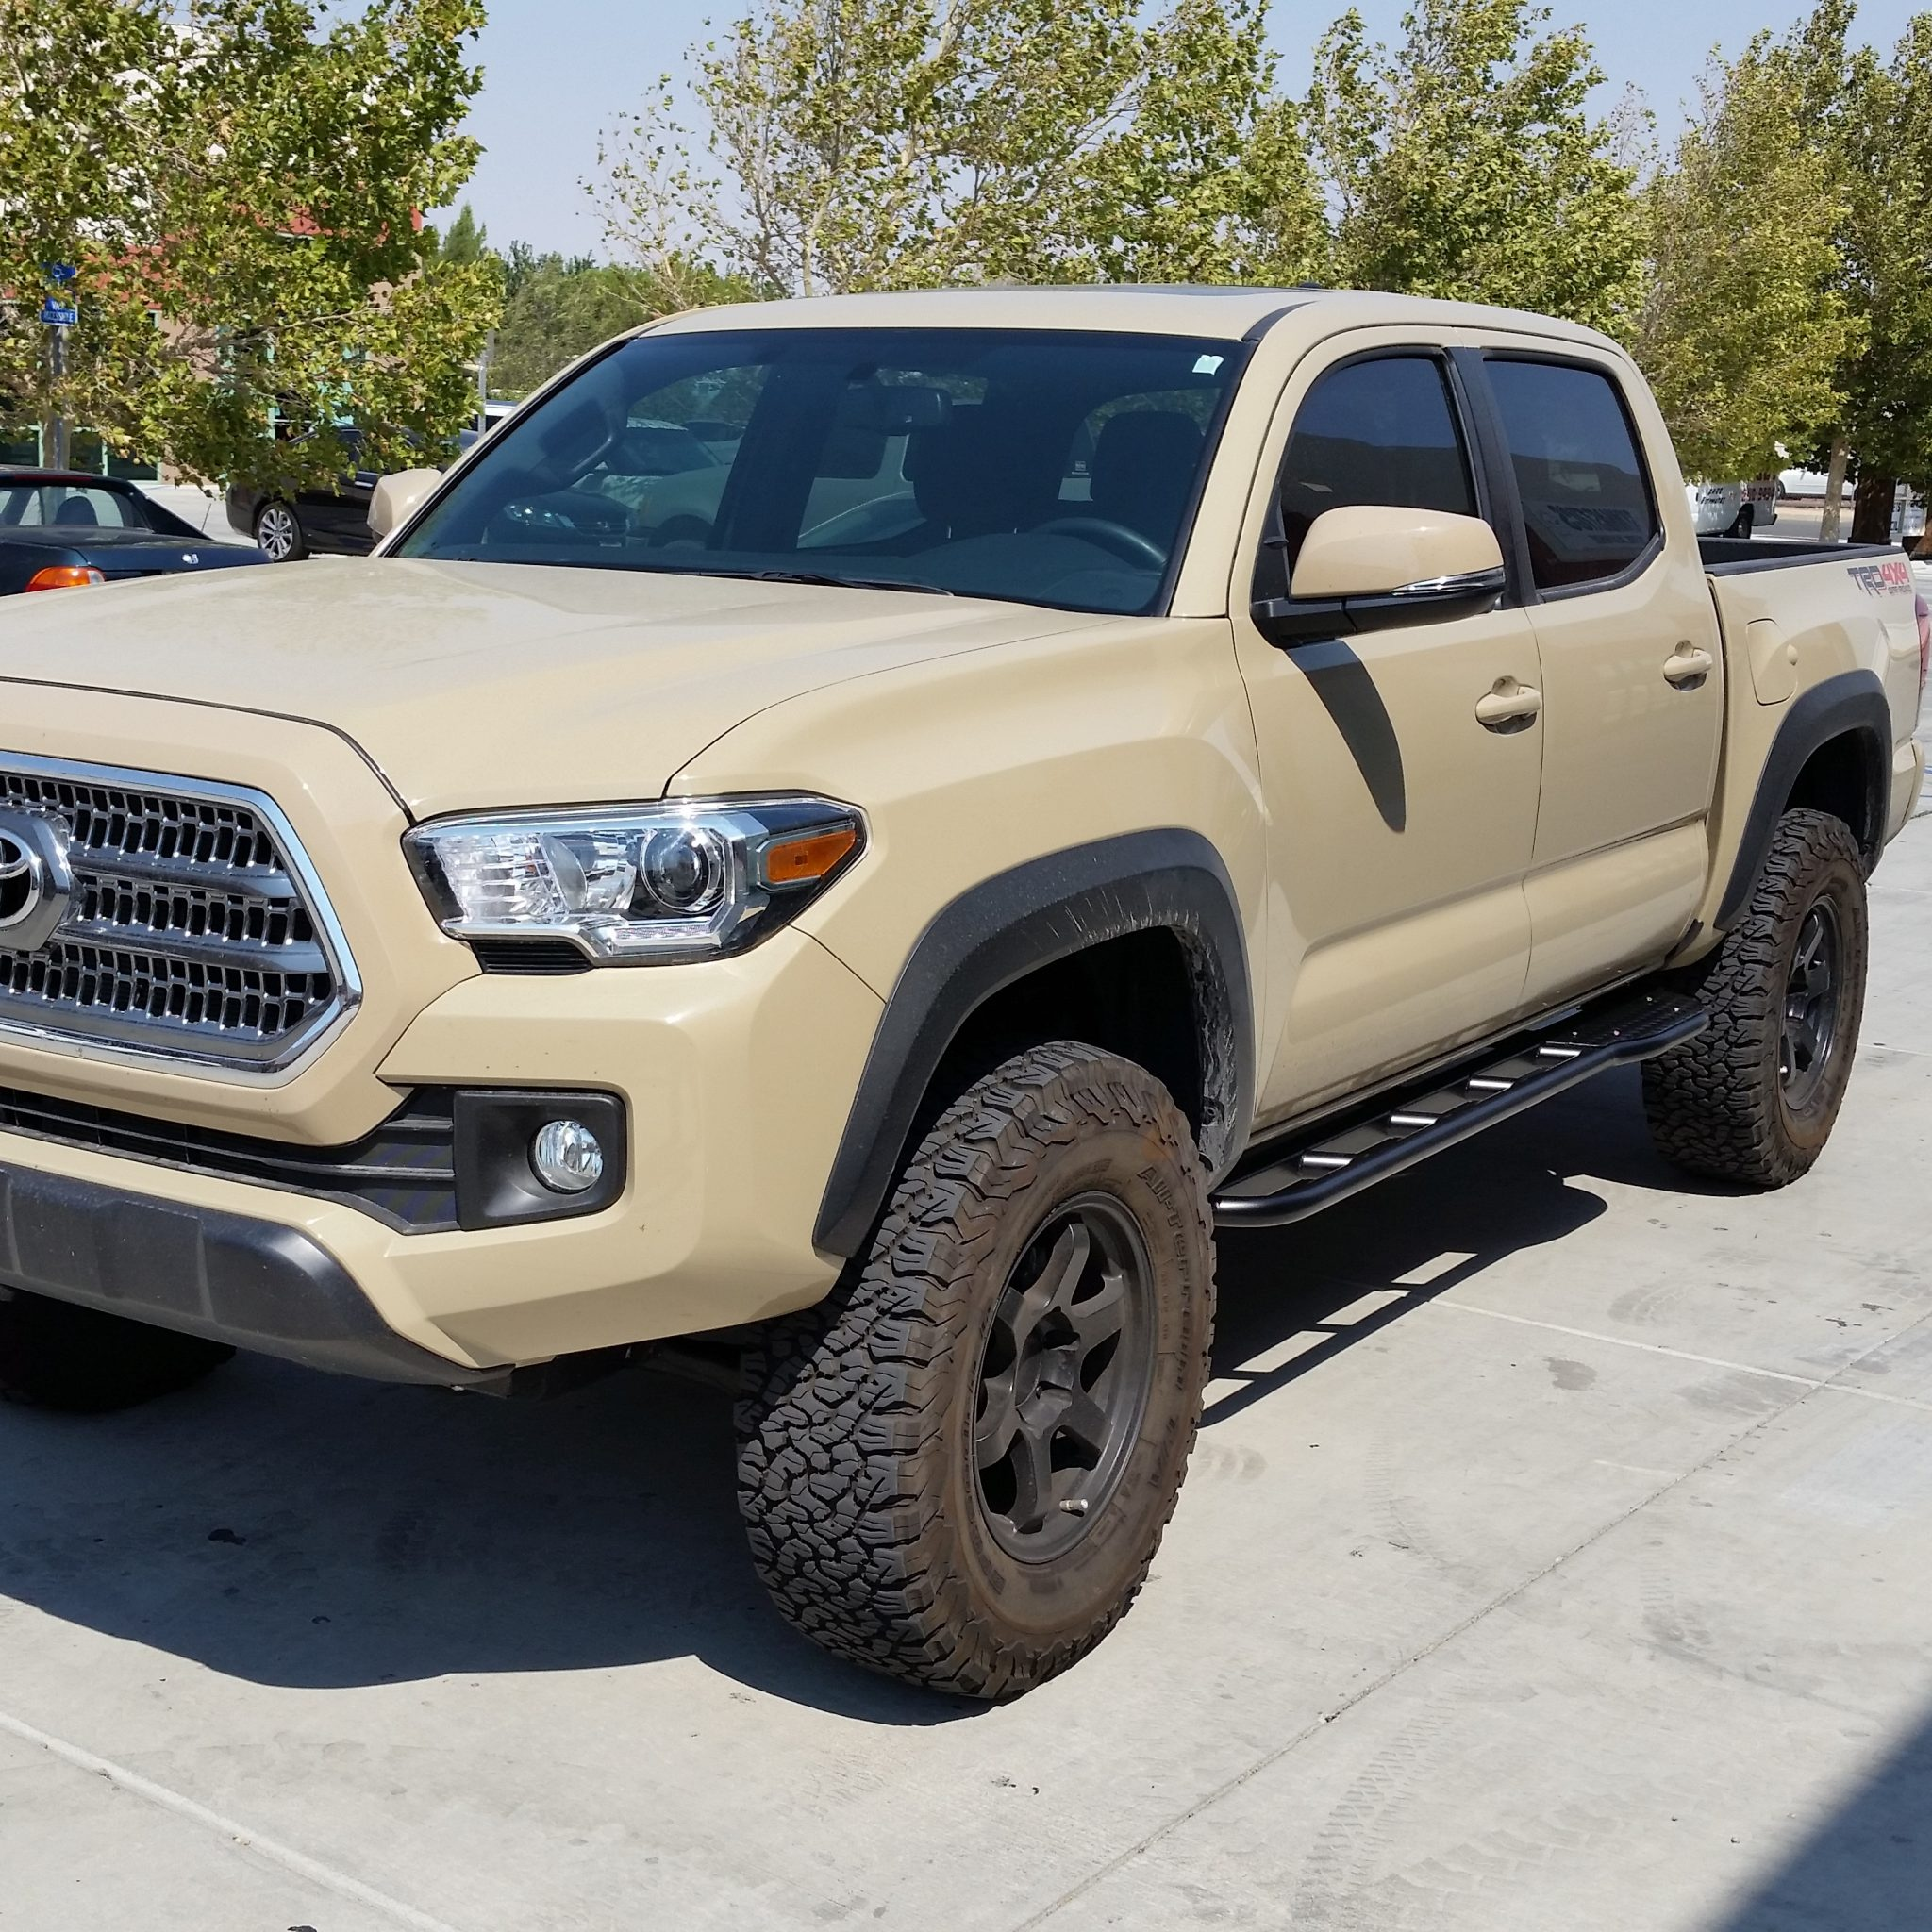 Toyota Tacoma Dimensions >> Toyota Tacoma 3rd Gen 2016 2020 Rock Sliders